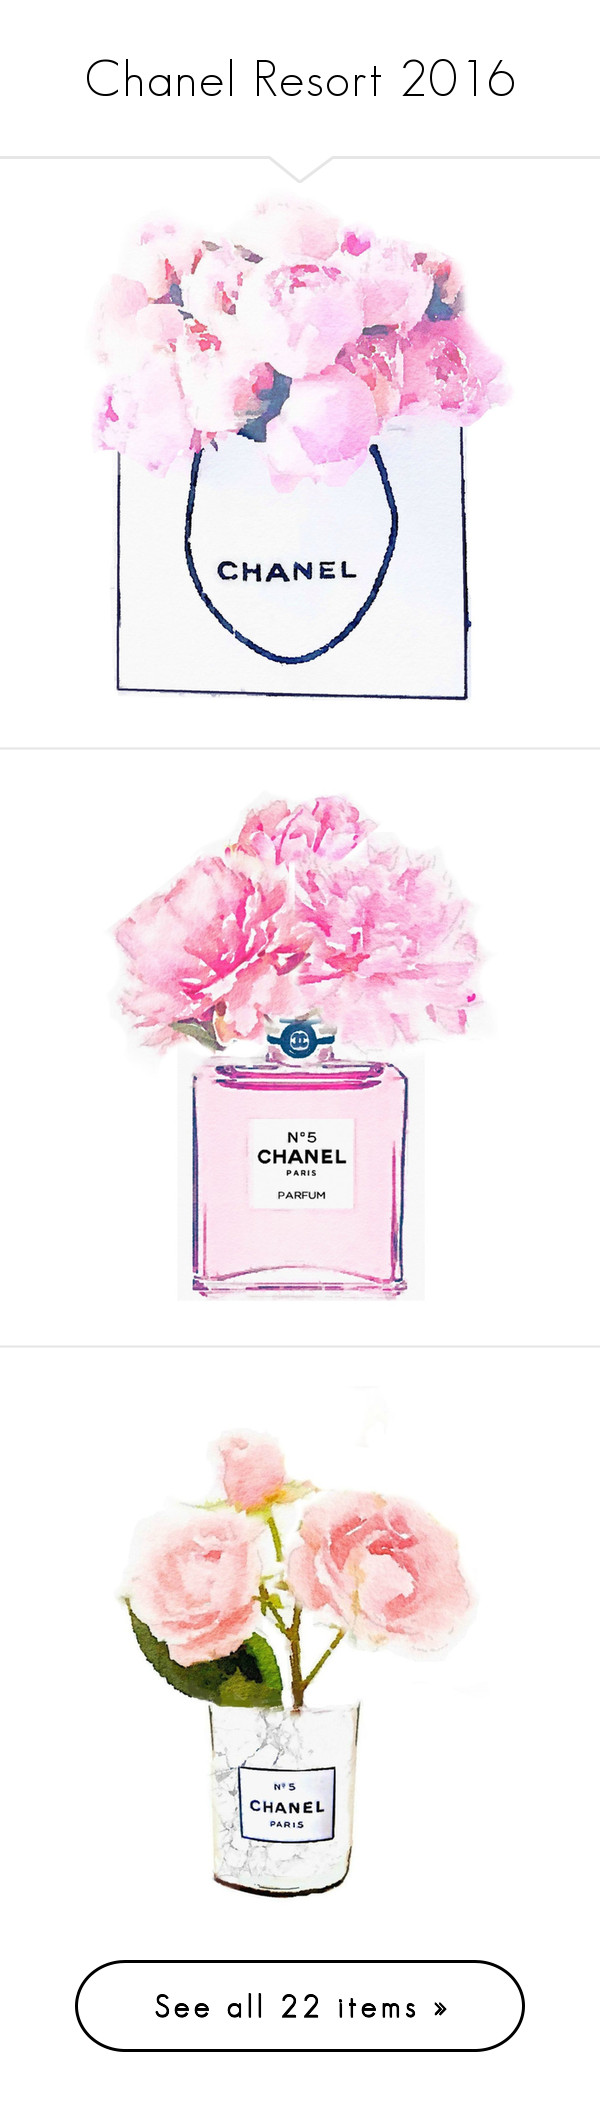 """Chanel Resort 2016"" by sylandrya ❤ liked on Polyvore featuring home, home decor, wall art, pink poster, chanel, paper wall art, pink wall art, pink home decor, perfume and flower paintings"